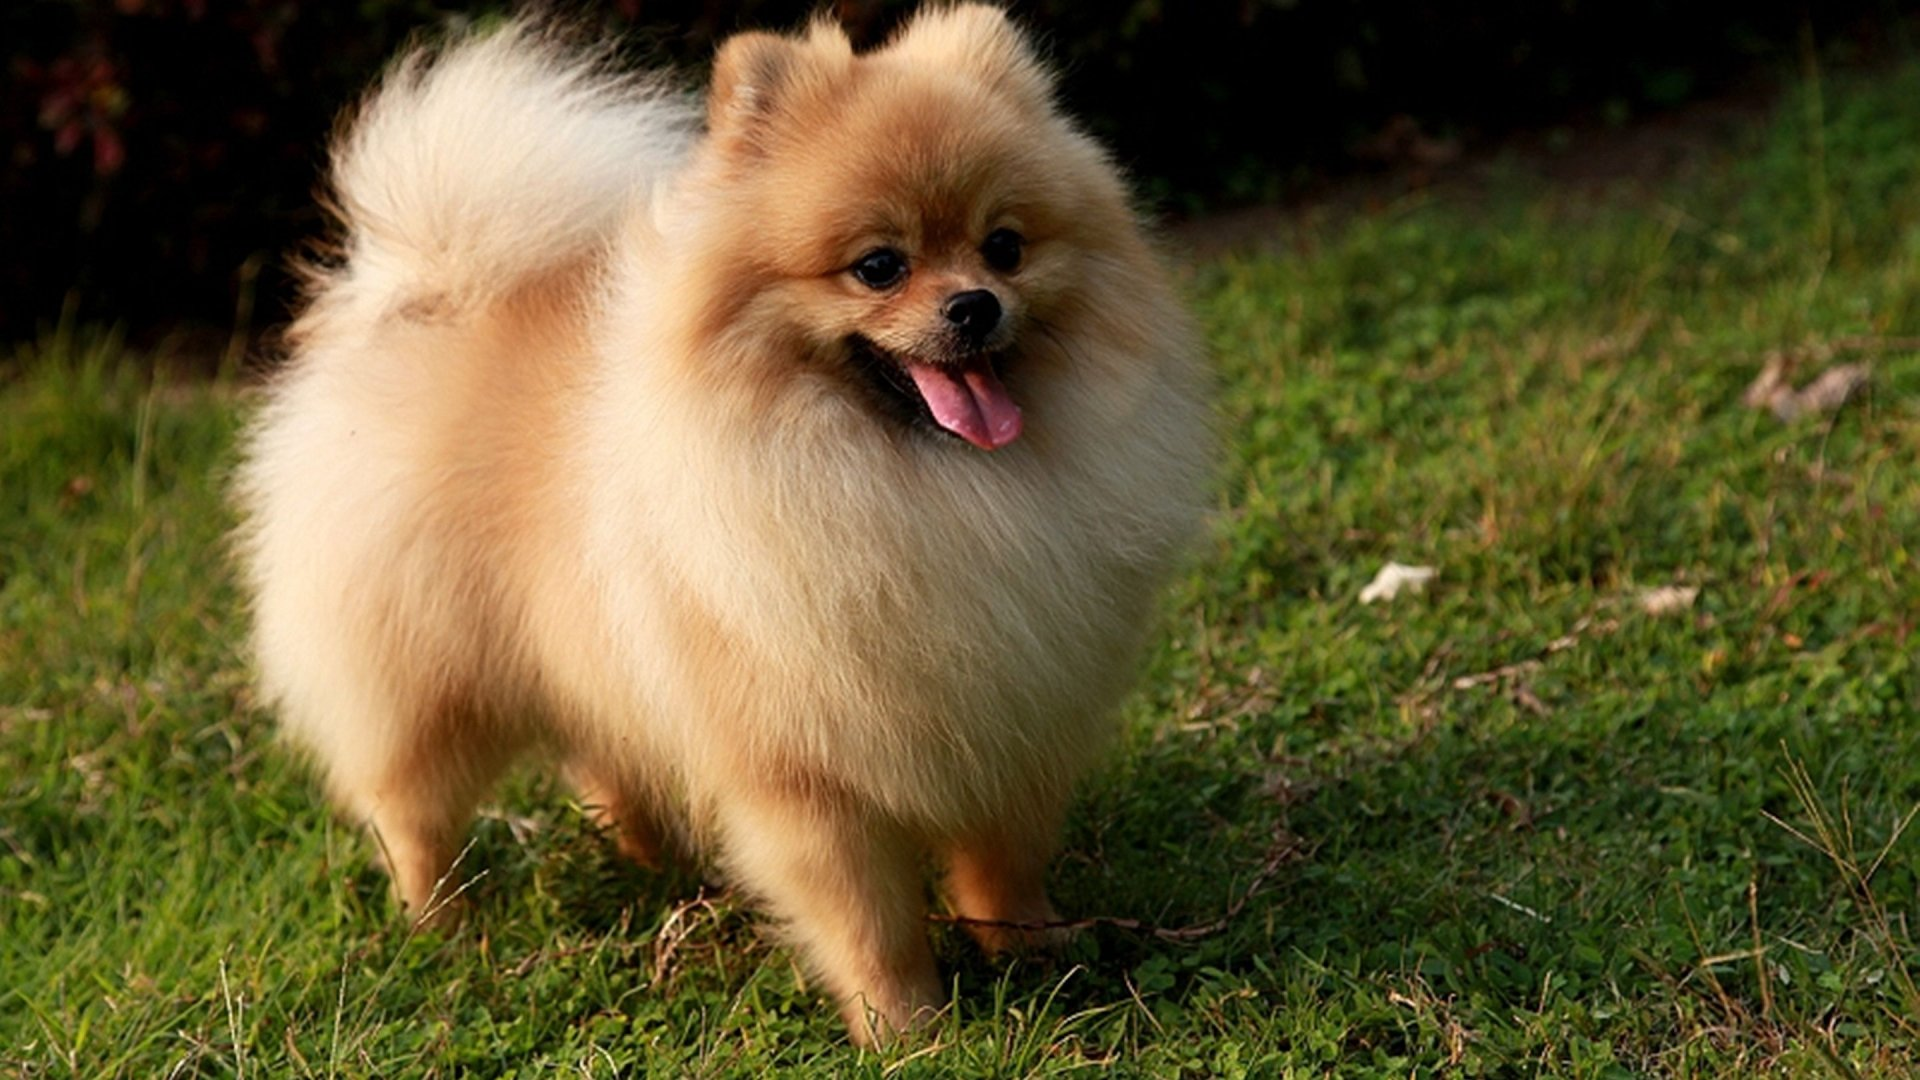 Adorable-Pomeranian-Puppies-For-more-cute-puppies-check-out-our-youtube-channel-https-www-youtu-wallpaper-wpc5801966